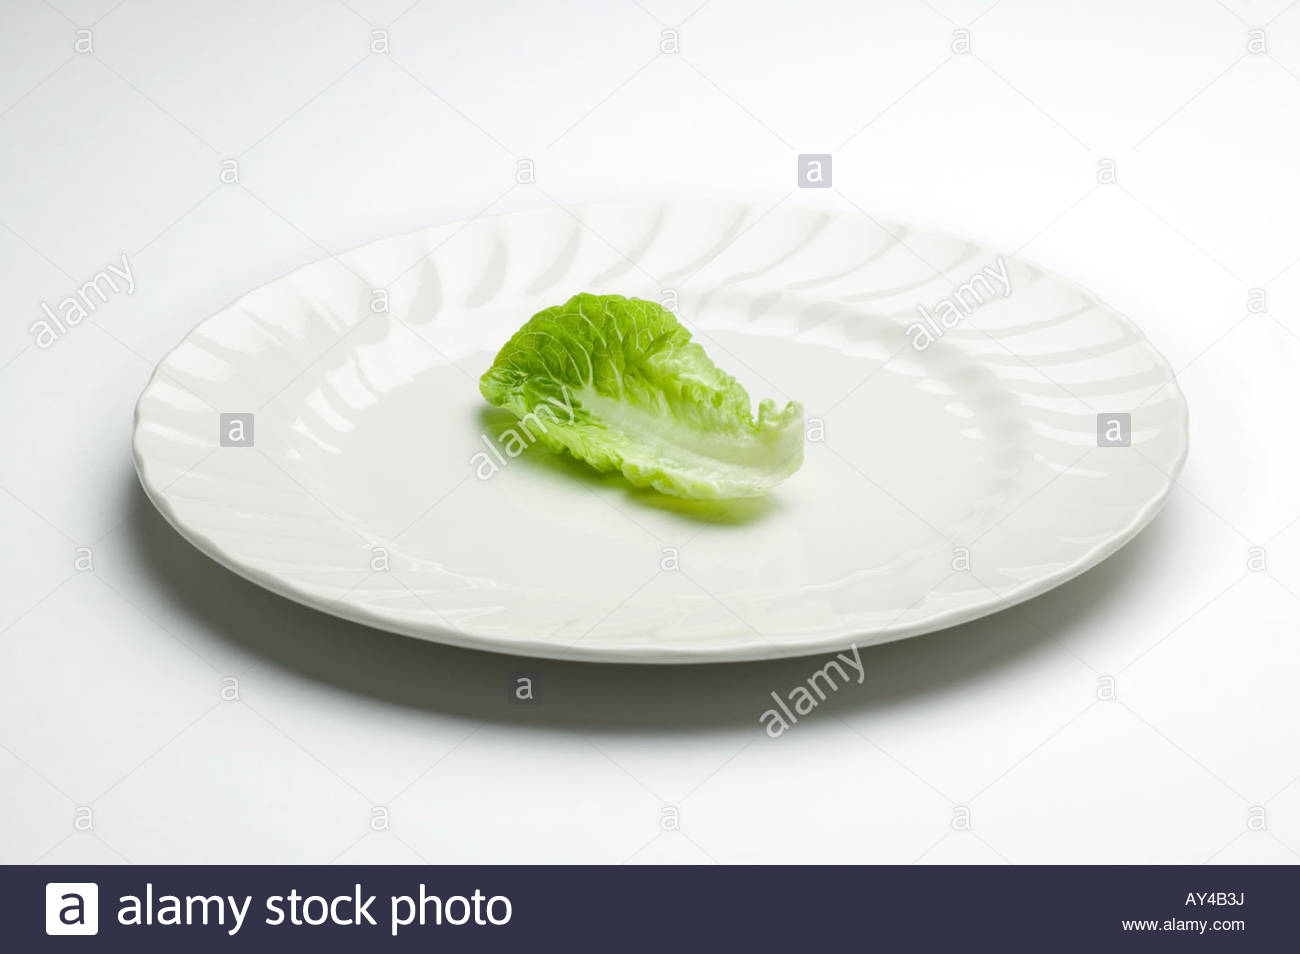 One lettuce leaf on a plate for someone on a diet - Stock Image